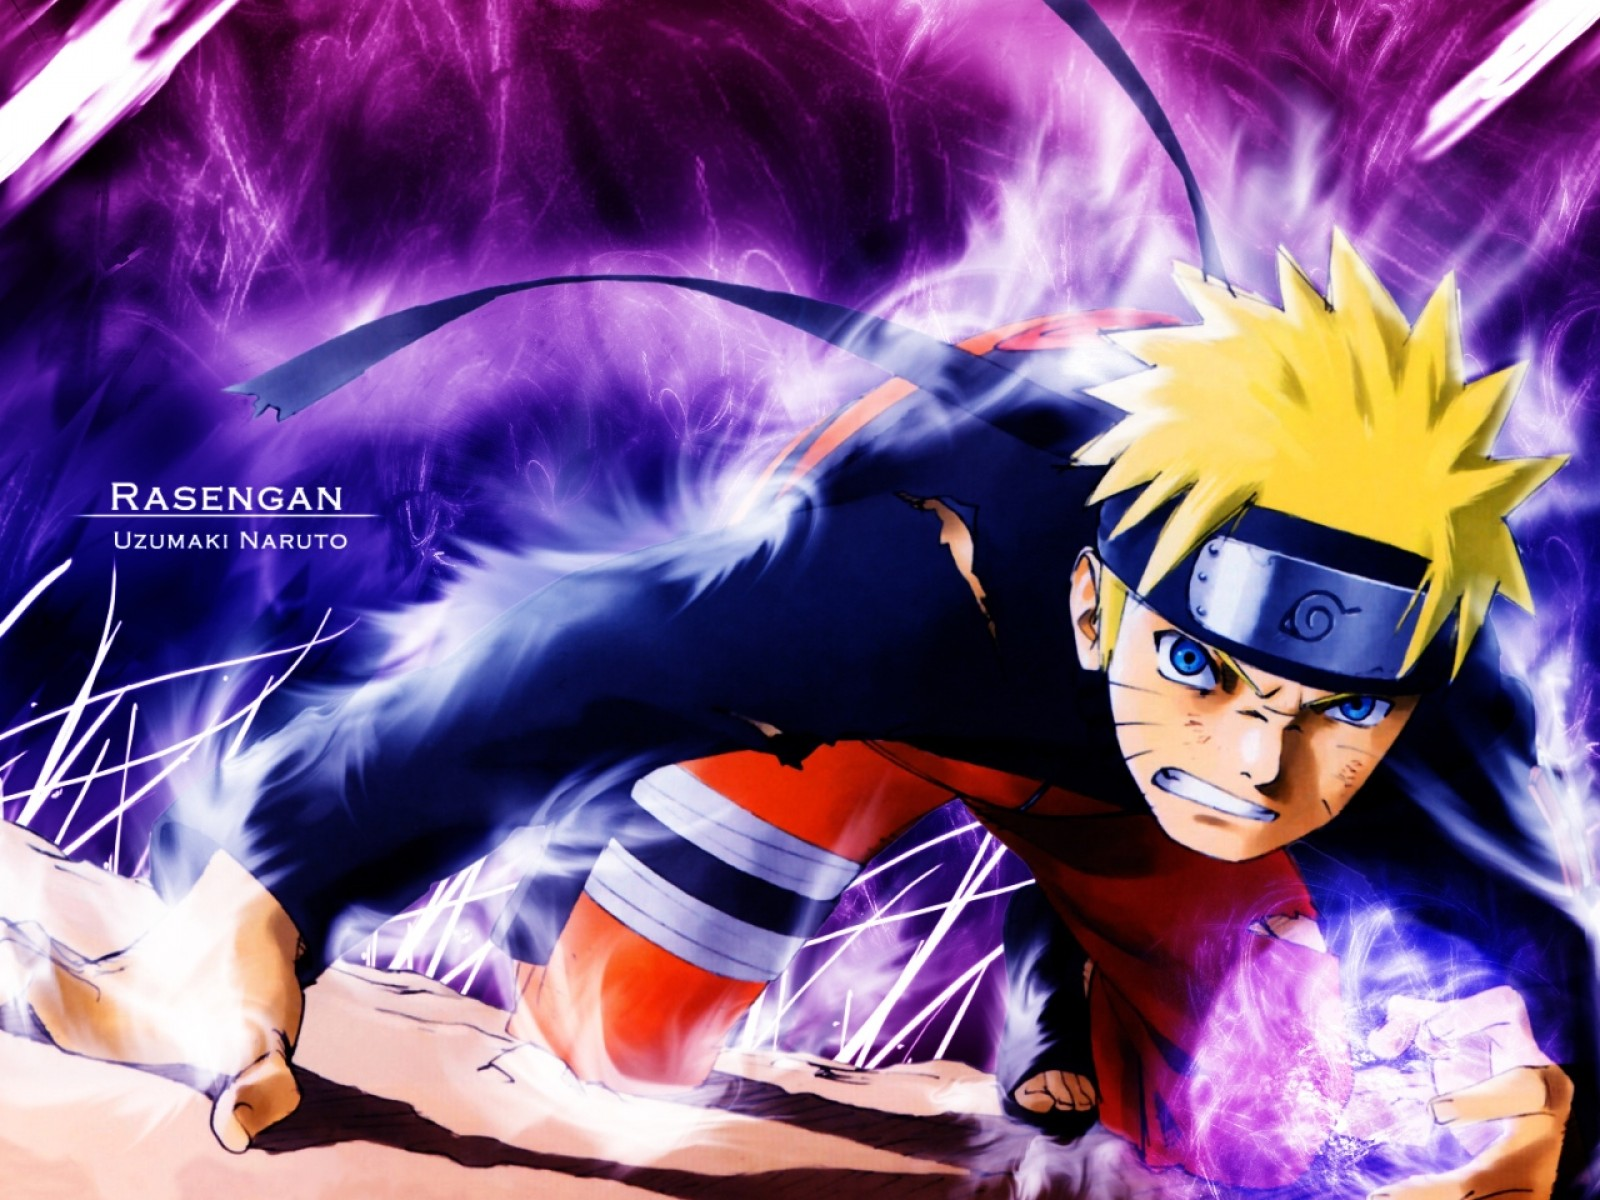 Download Wallpaper High Resolution Naruto - naruto_shippuden_desktop_backgrounds_002  Trends_786221.jpg